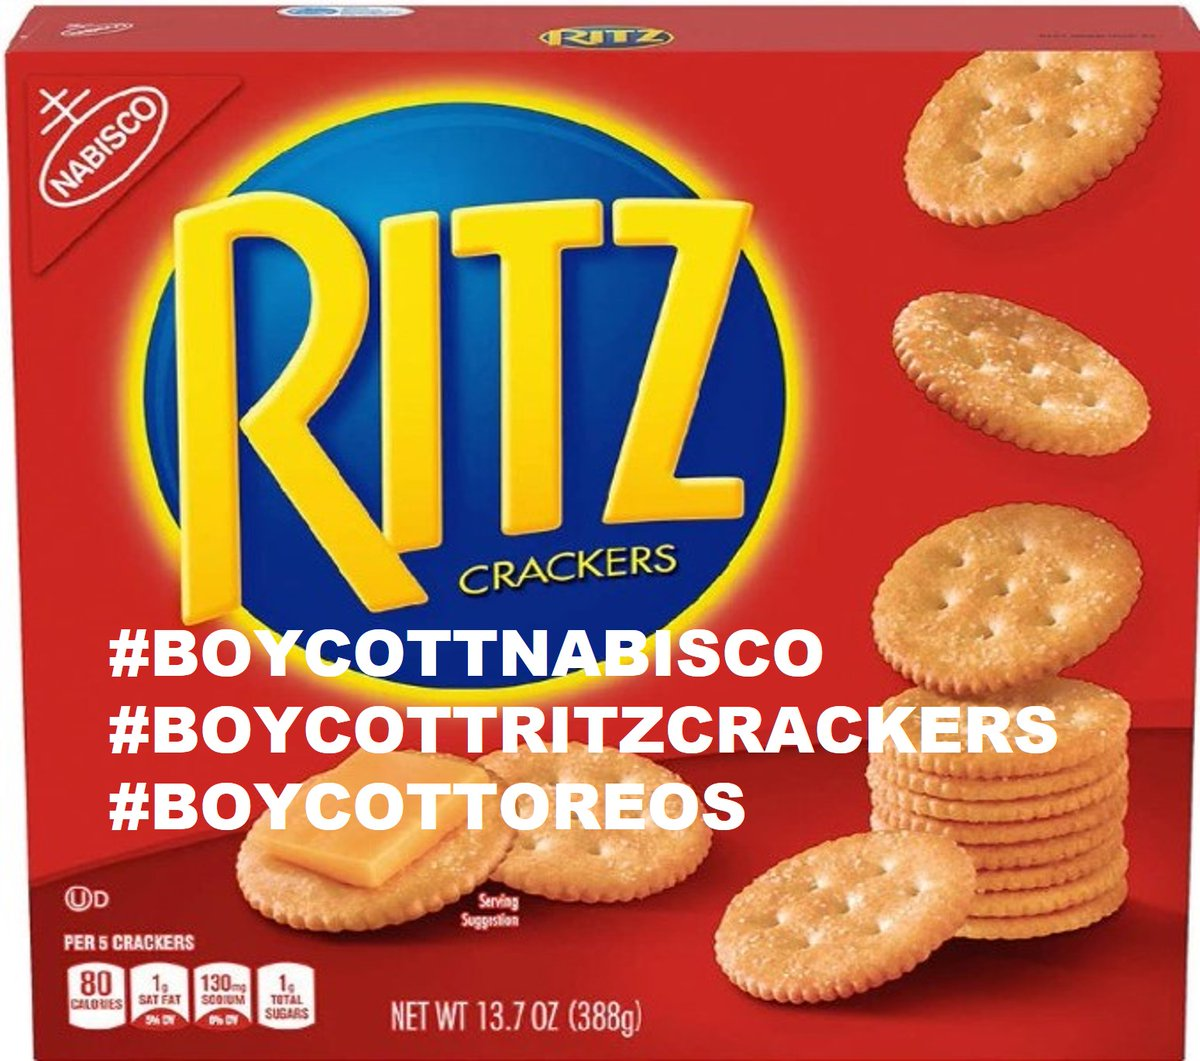 RT:  #BoycottNabisco #BoycottOreos  The boycott was prompted by the Mondelez company's decision to close its American factories and move production to Mexico. #JimmyDore  youtu.be/BLlbAZ1Q-Mo